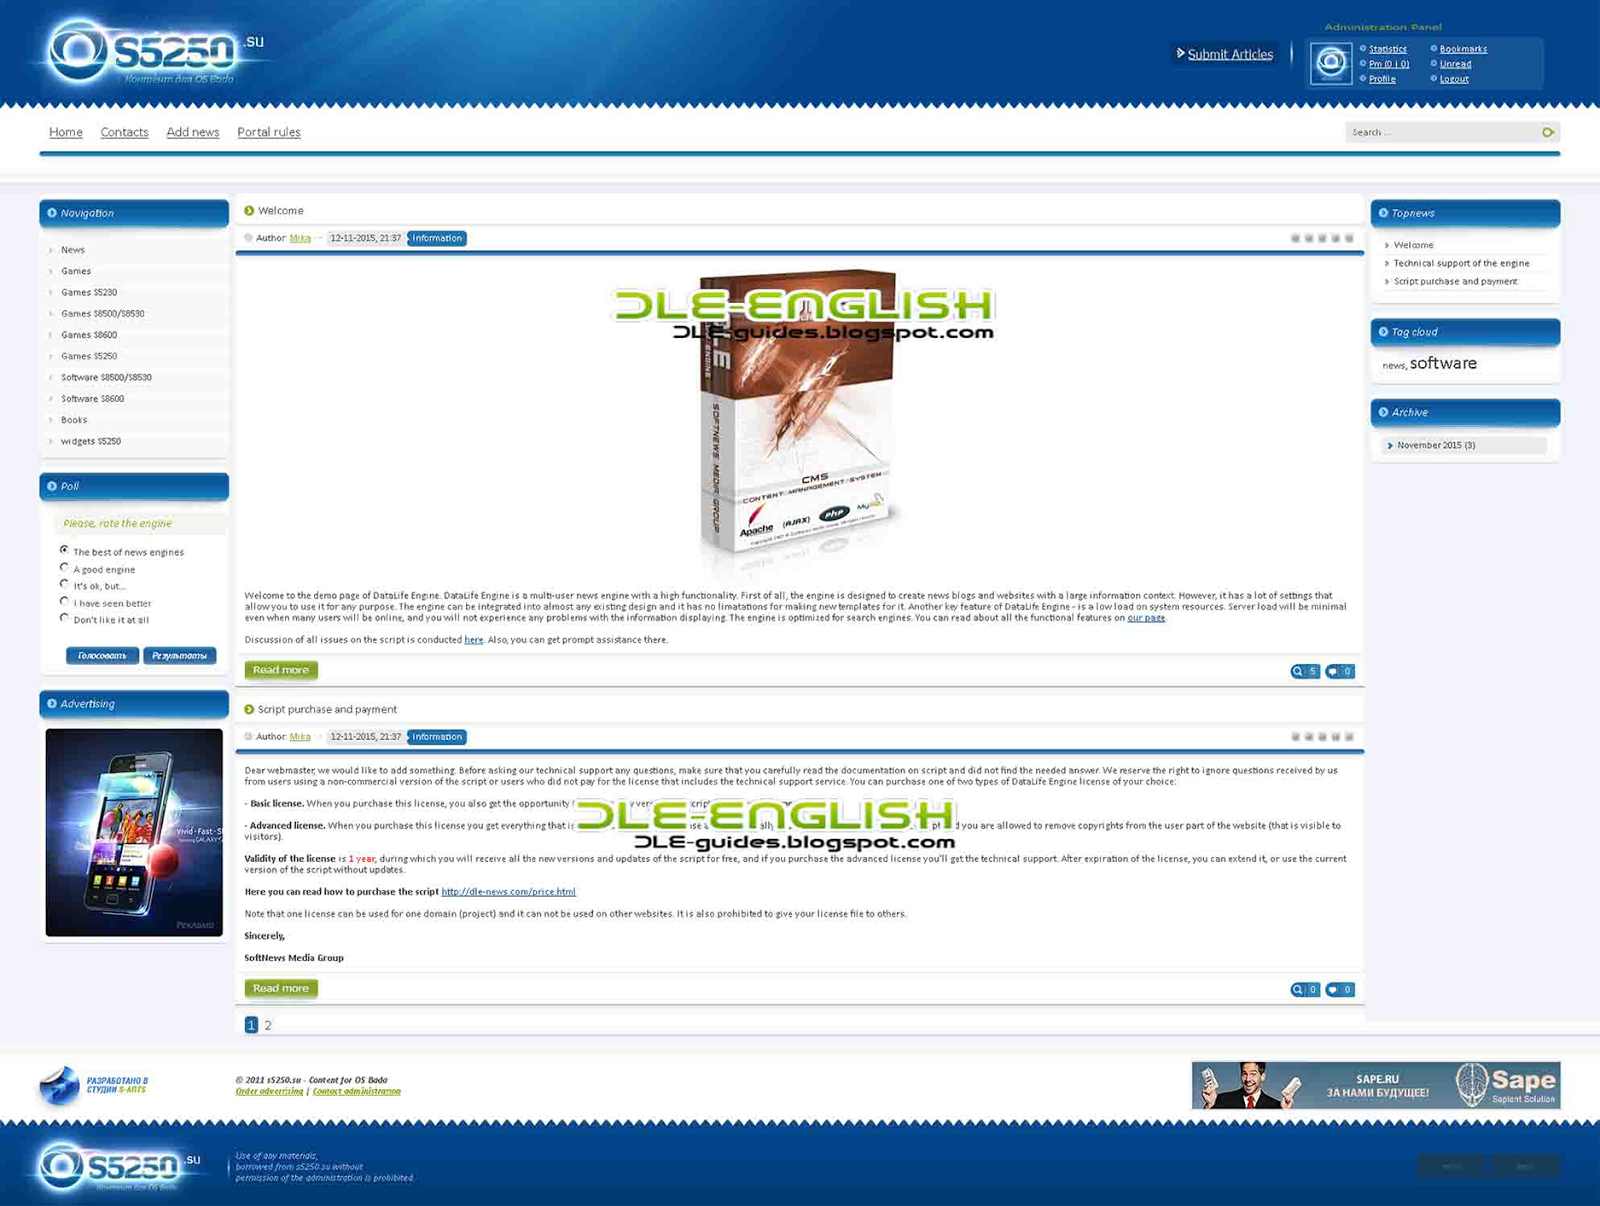 S5250 Template FOR DLE 10.6 English